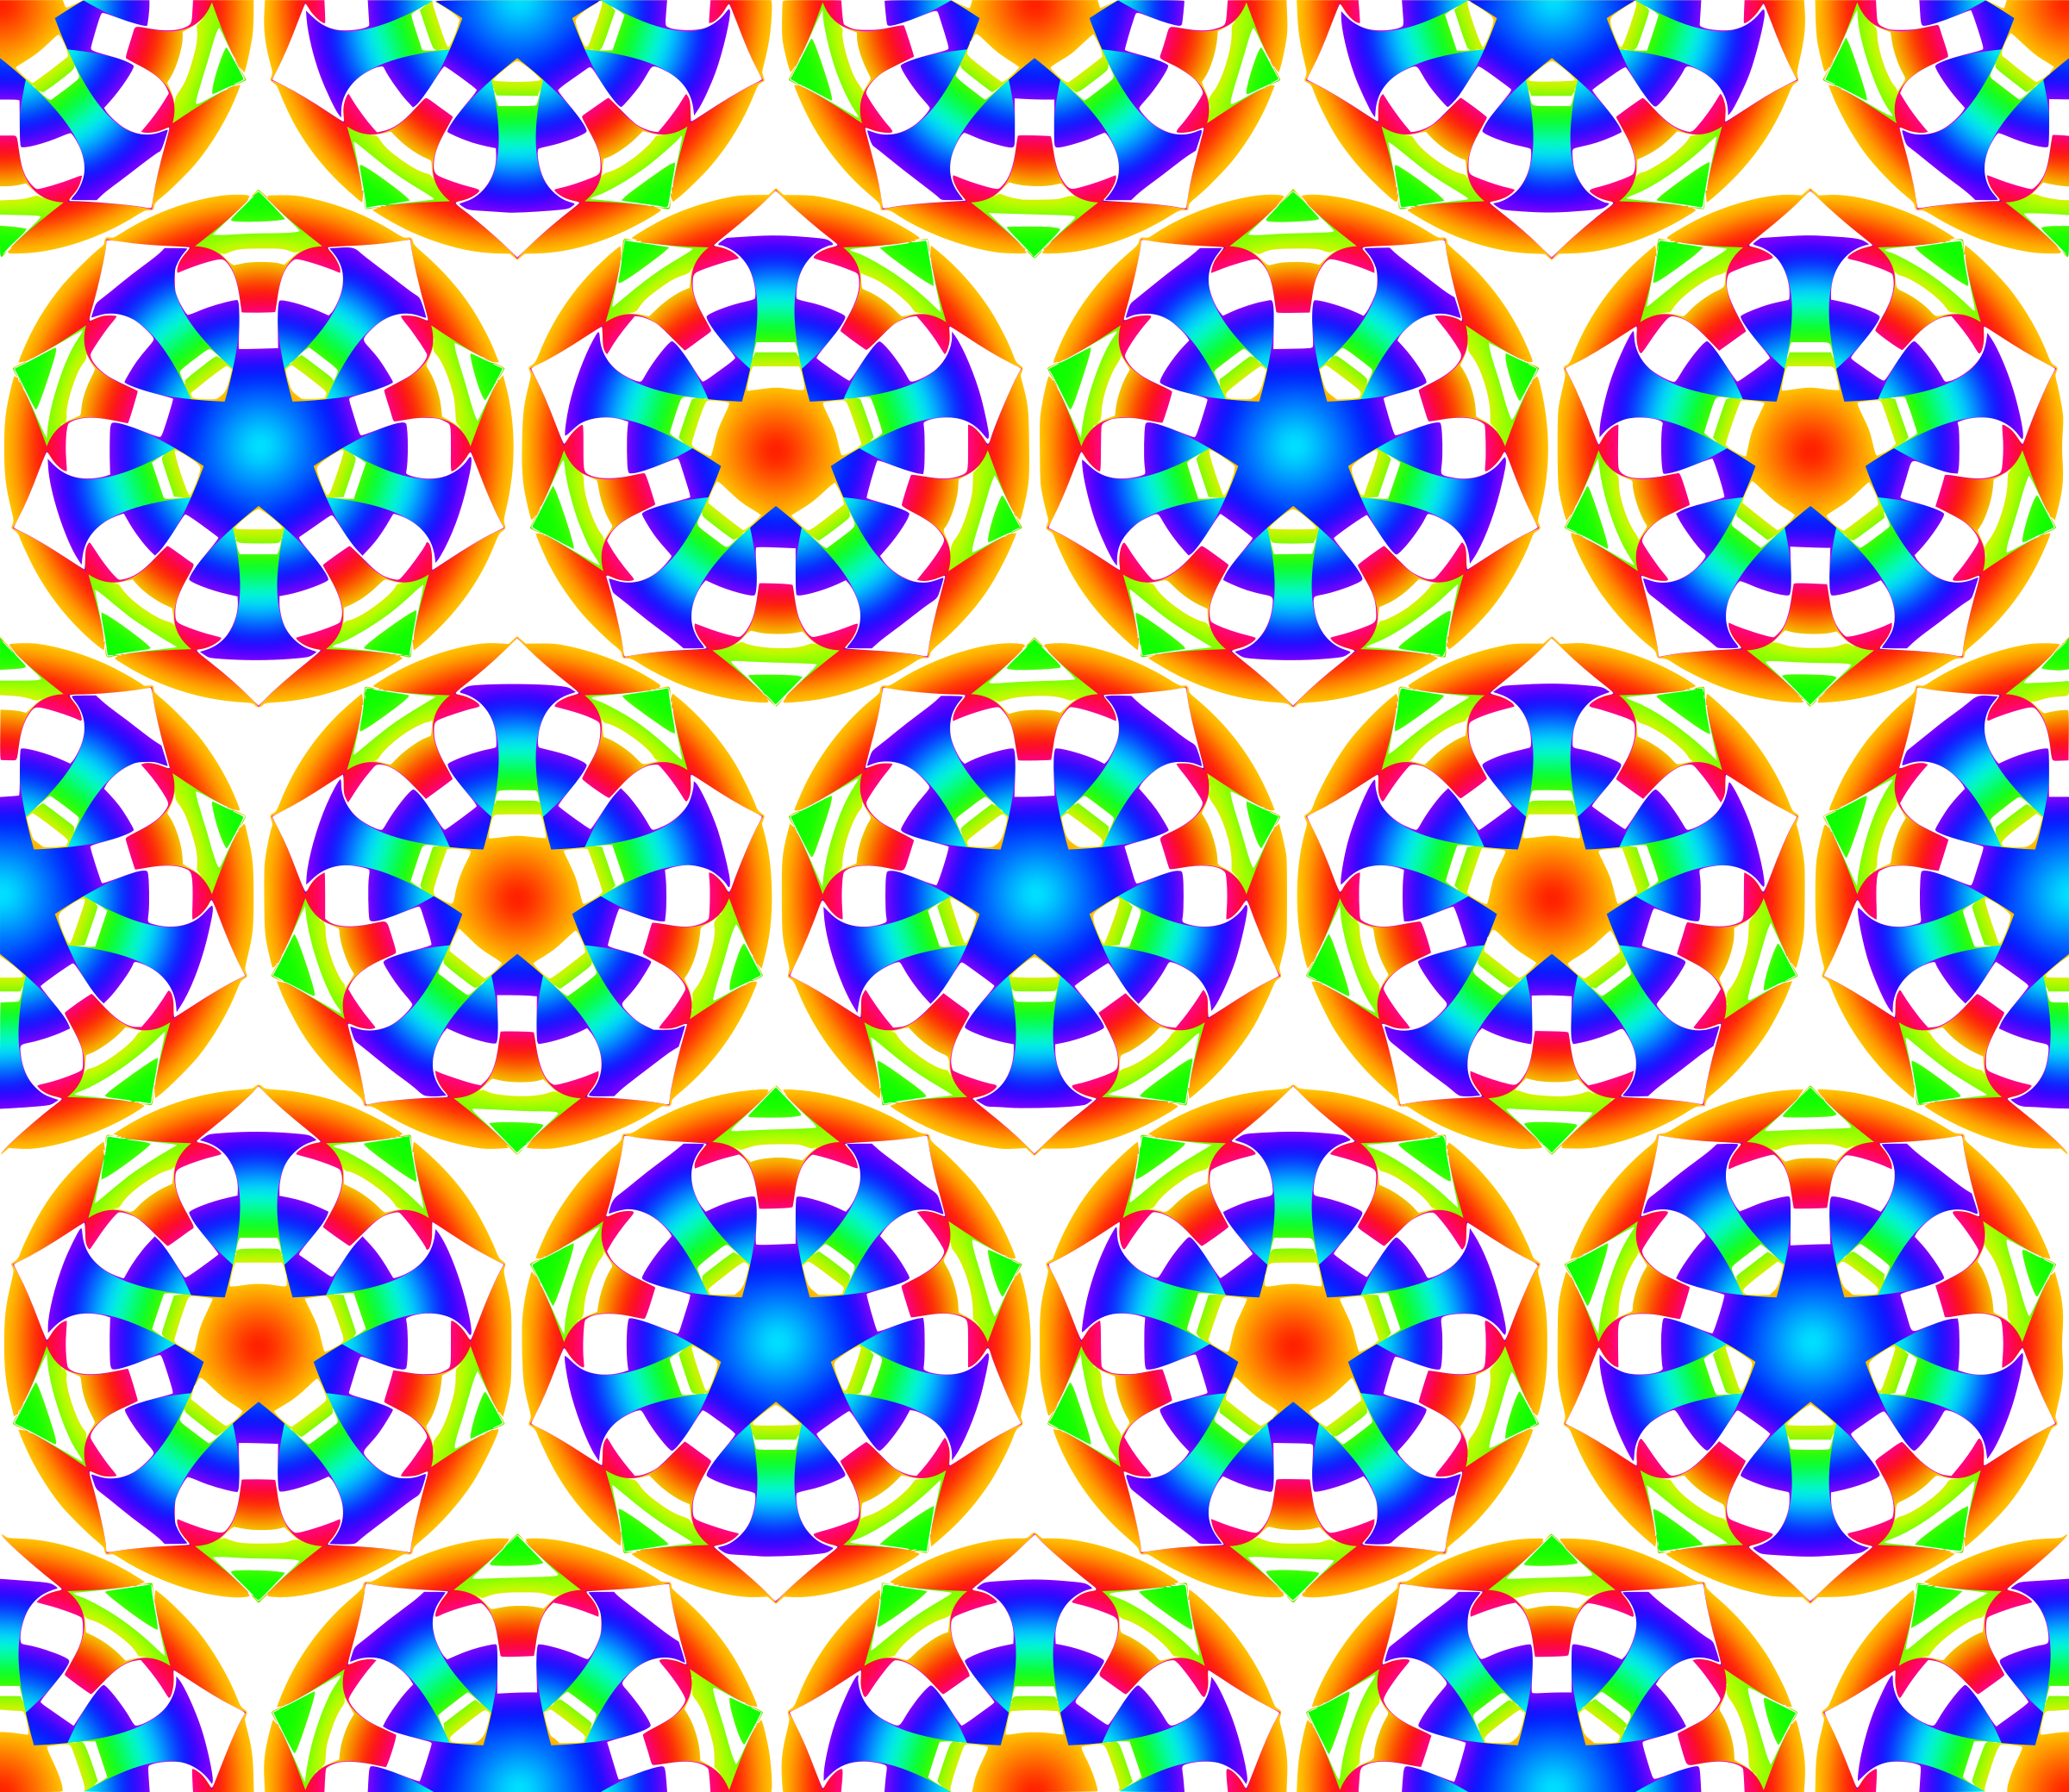 Background pattern 58 (colour 2) by Firkin